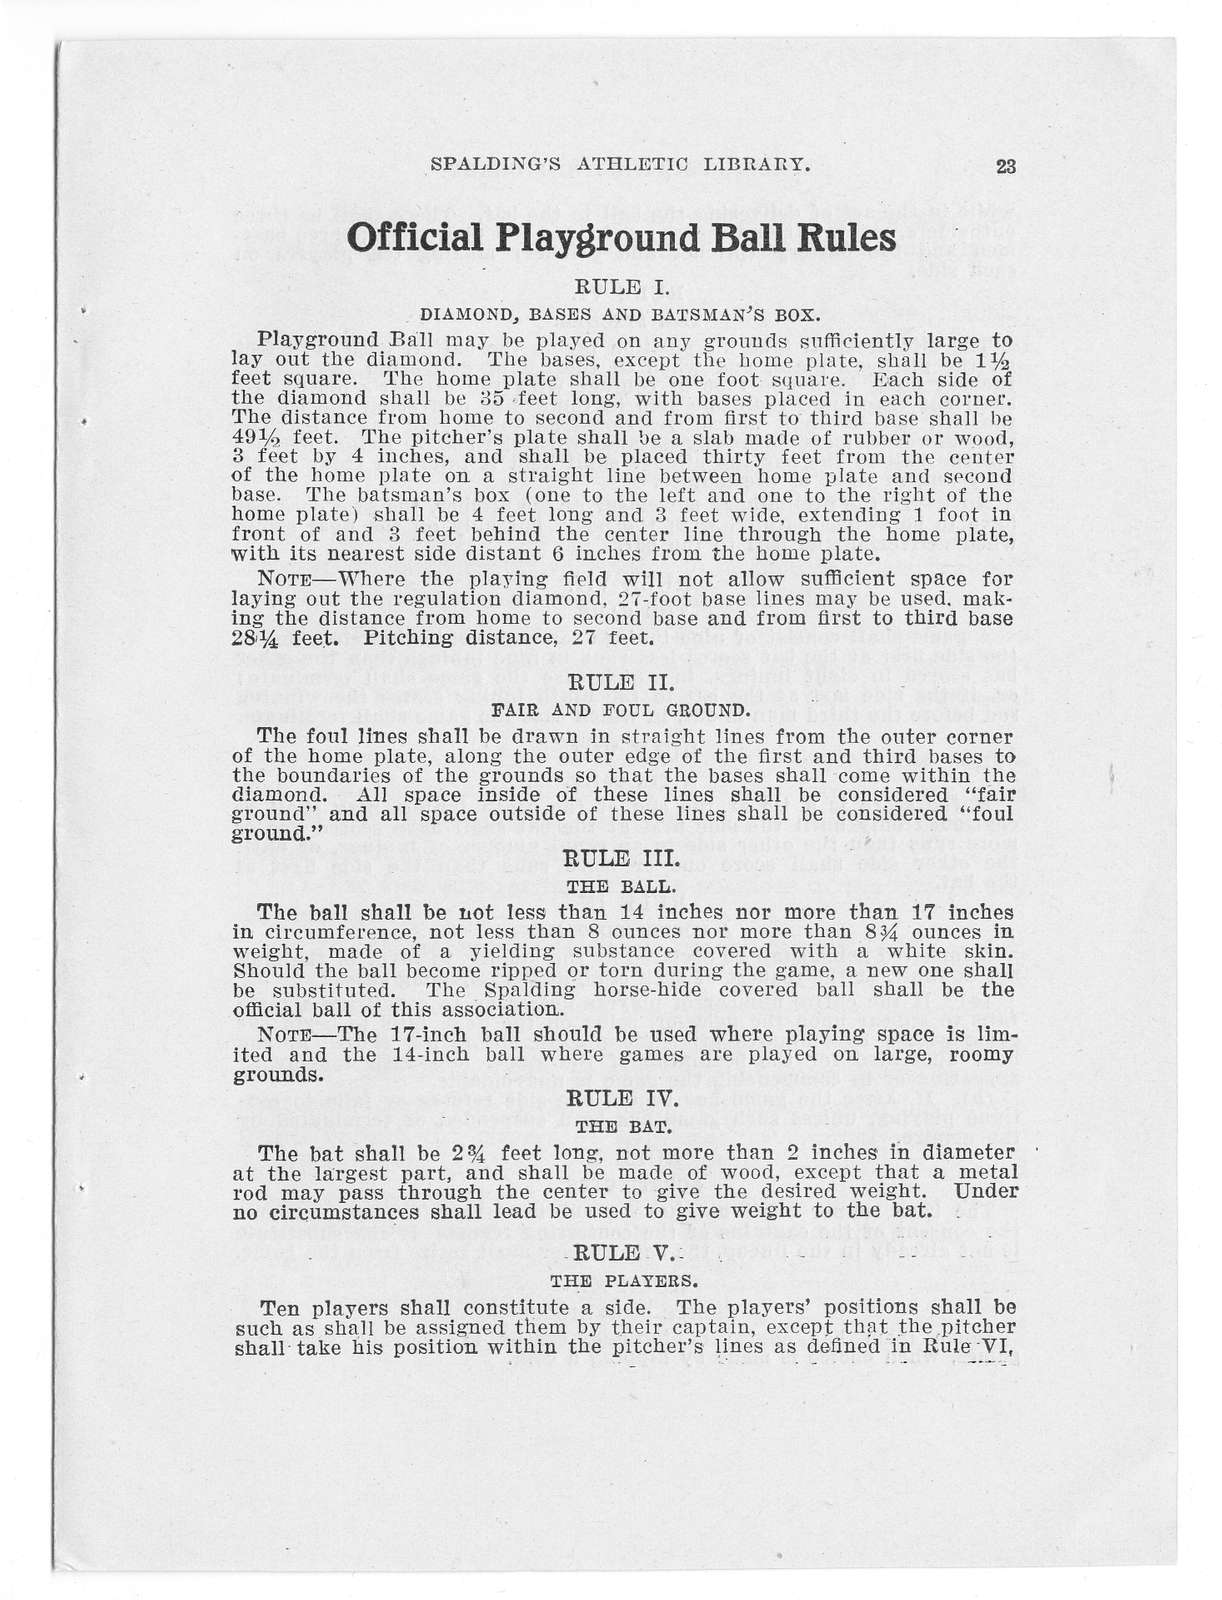 Official indoor base ball guide containing the constitution, 1921-1922